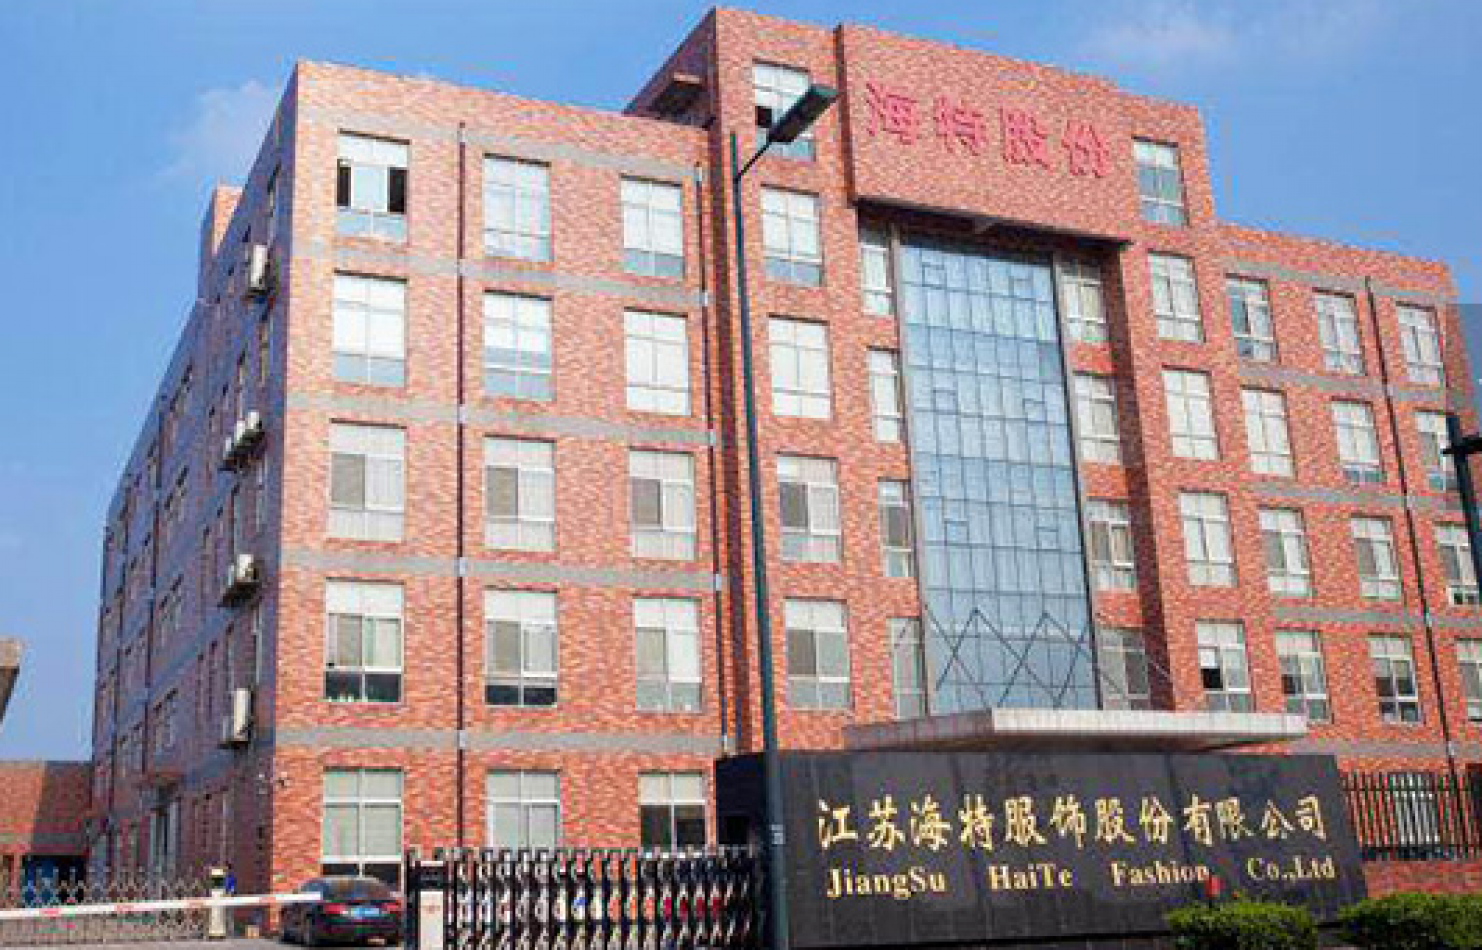 Jiangsu Haite Fashion Co., Ltd